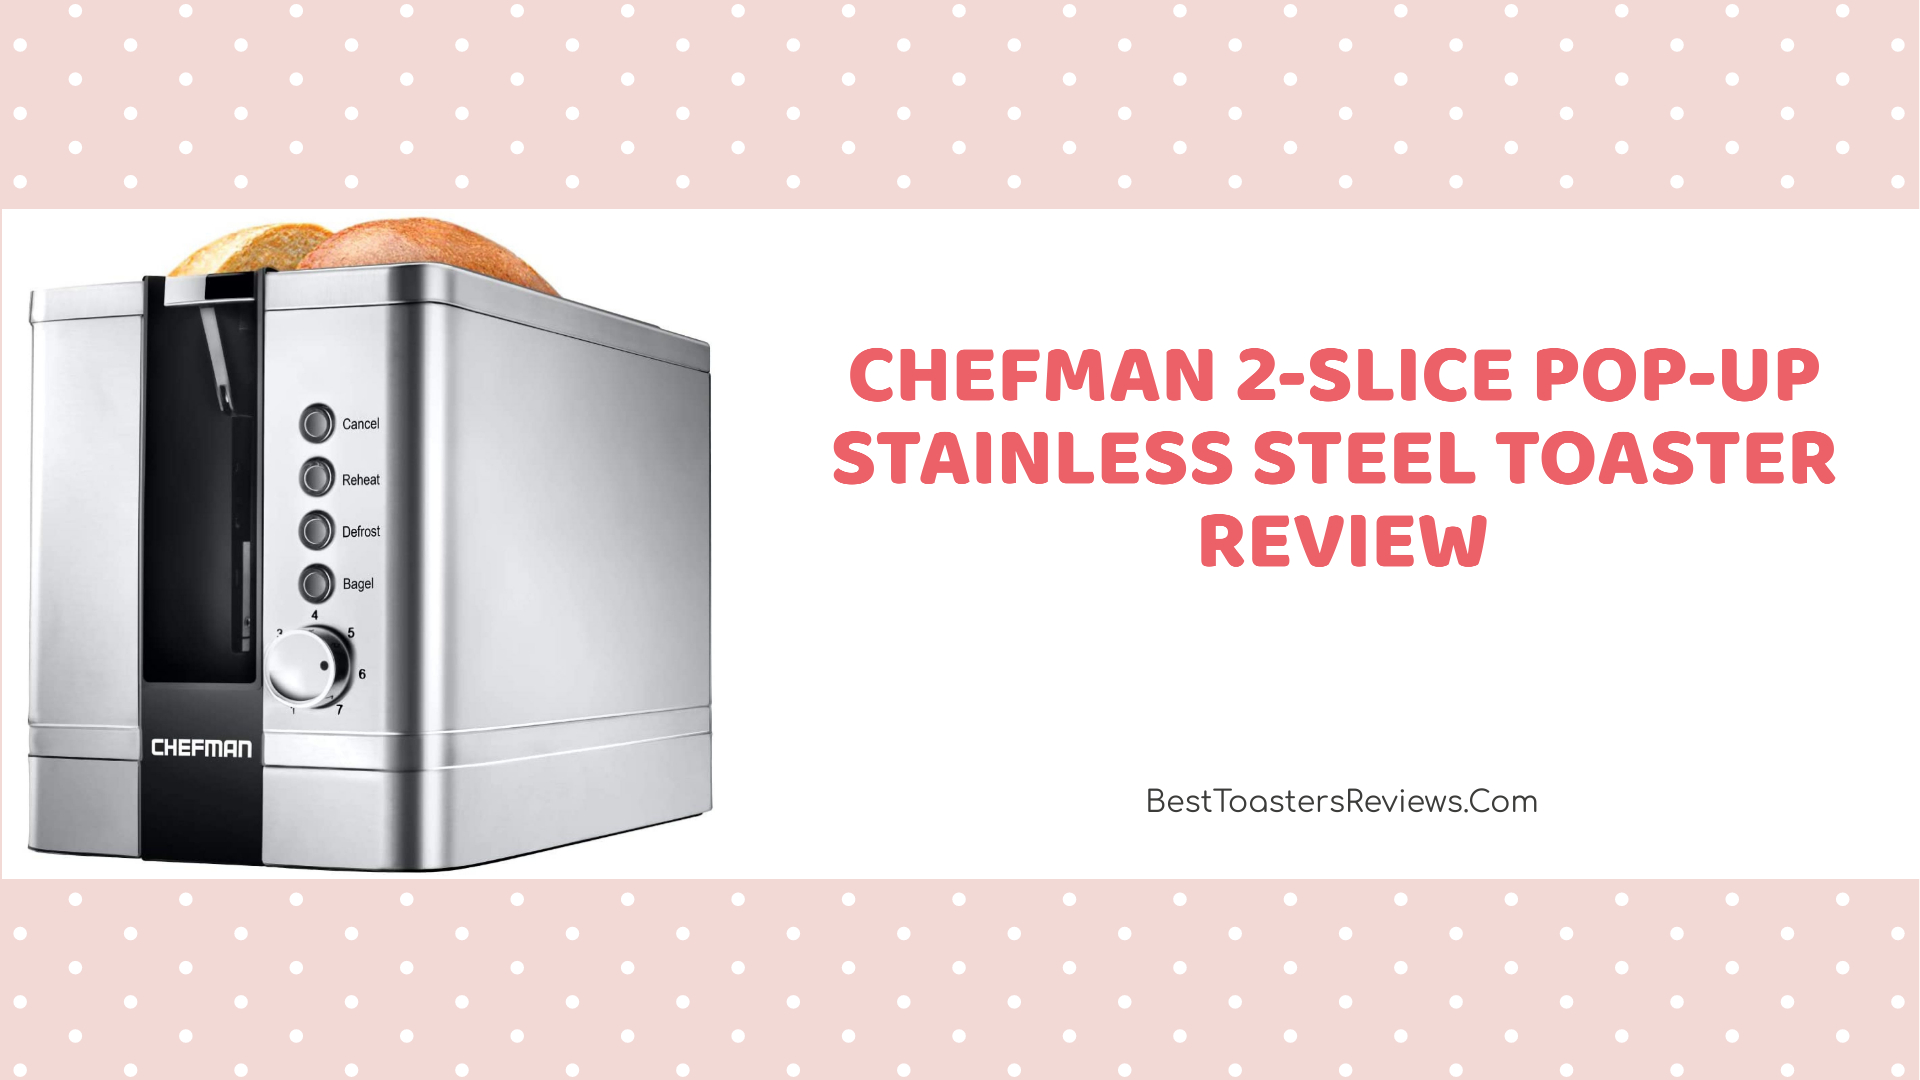 Chefman 2-Slice Pop-Up Stainless Steel Toaster Review